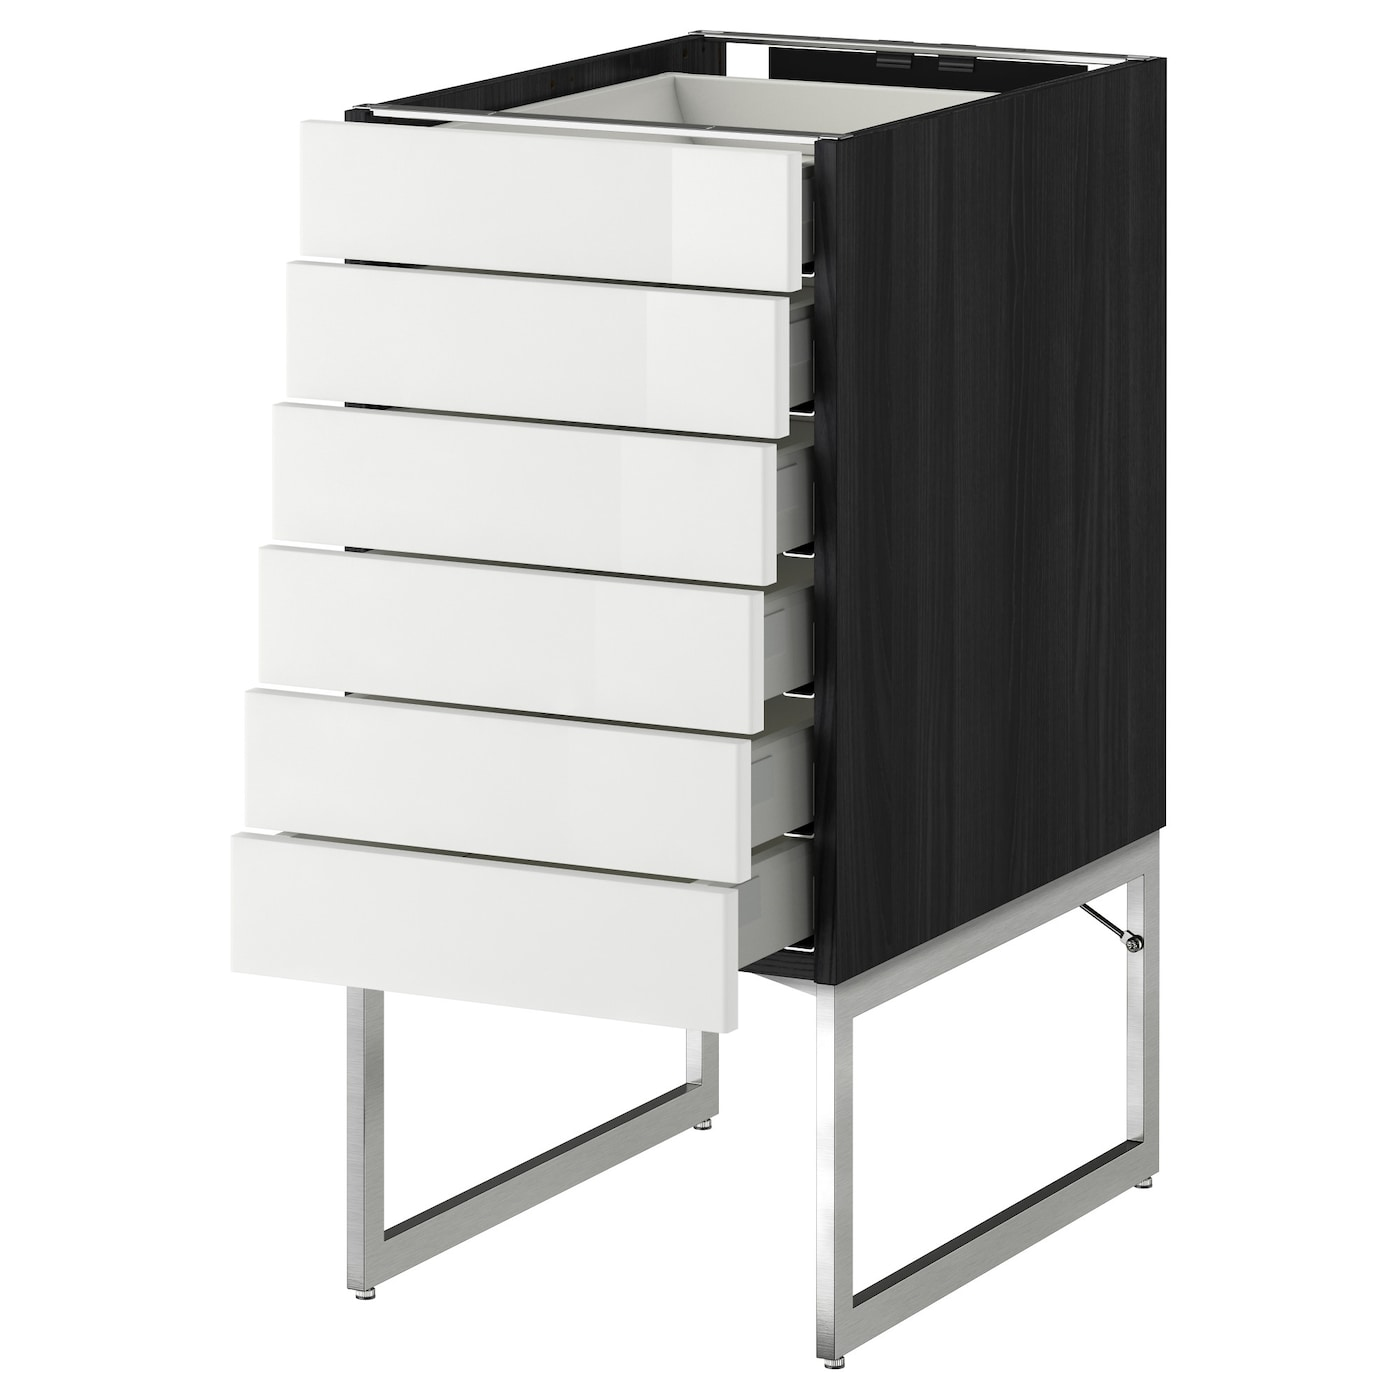 Metod Maximera Base Cabinet 6 Fronts 6 Low Drawers Black Ringhult White 40x60x60 Cm Ikea